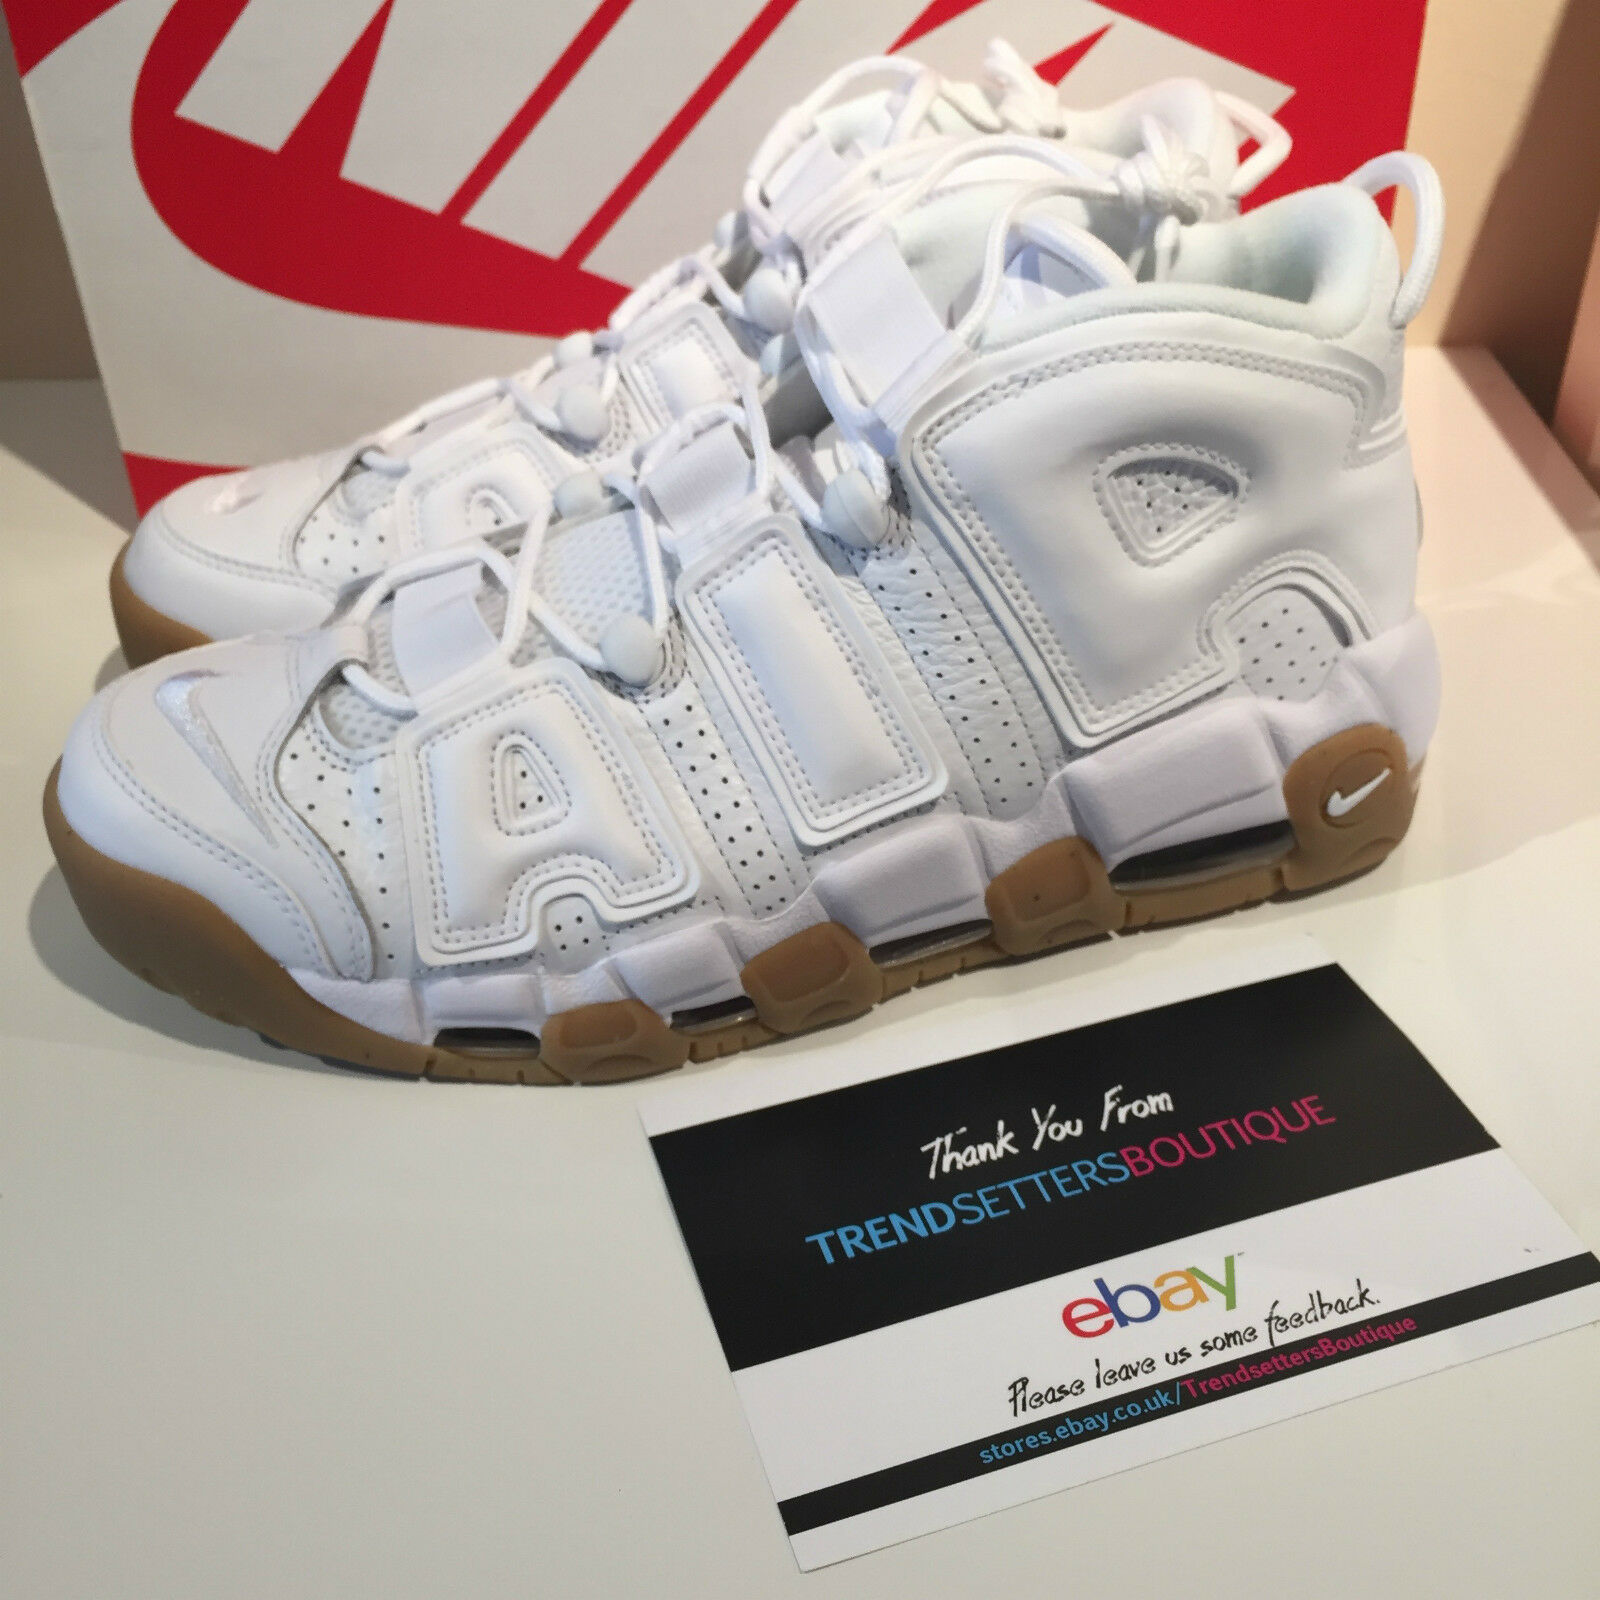 NIKE AIR MORE UPTEMPO blanc US8 8.5 414962-103 9 9.5 11 12 414962-103 8.5 GUM SIZE SCOTTIE 8766f3